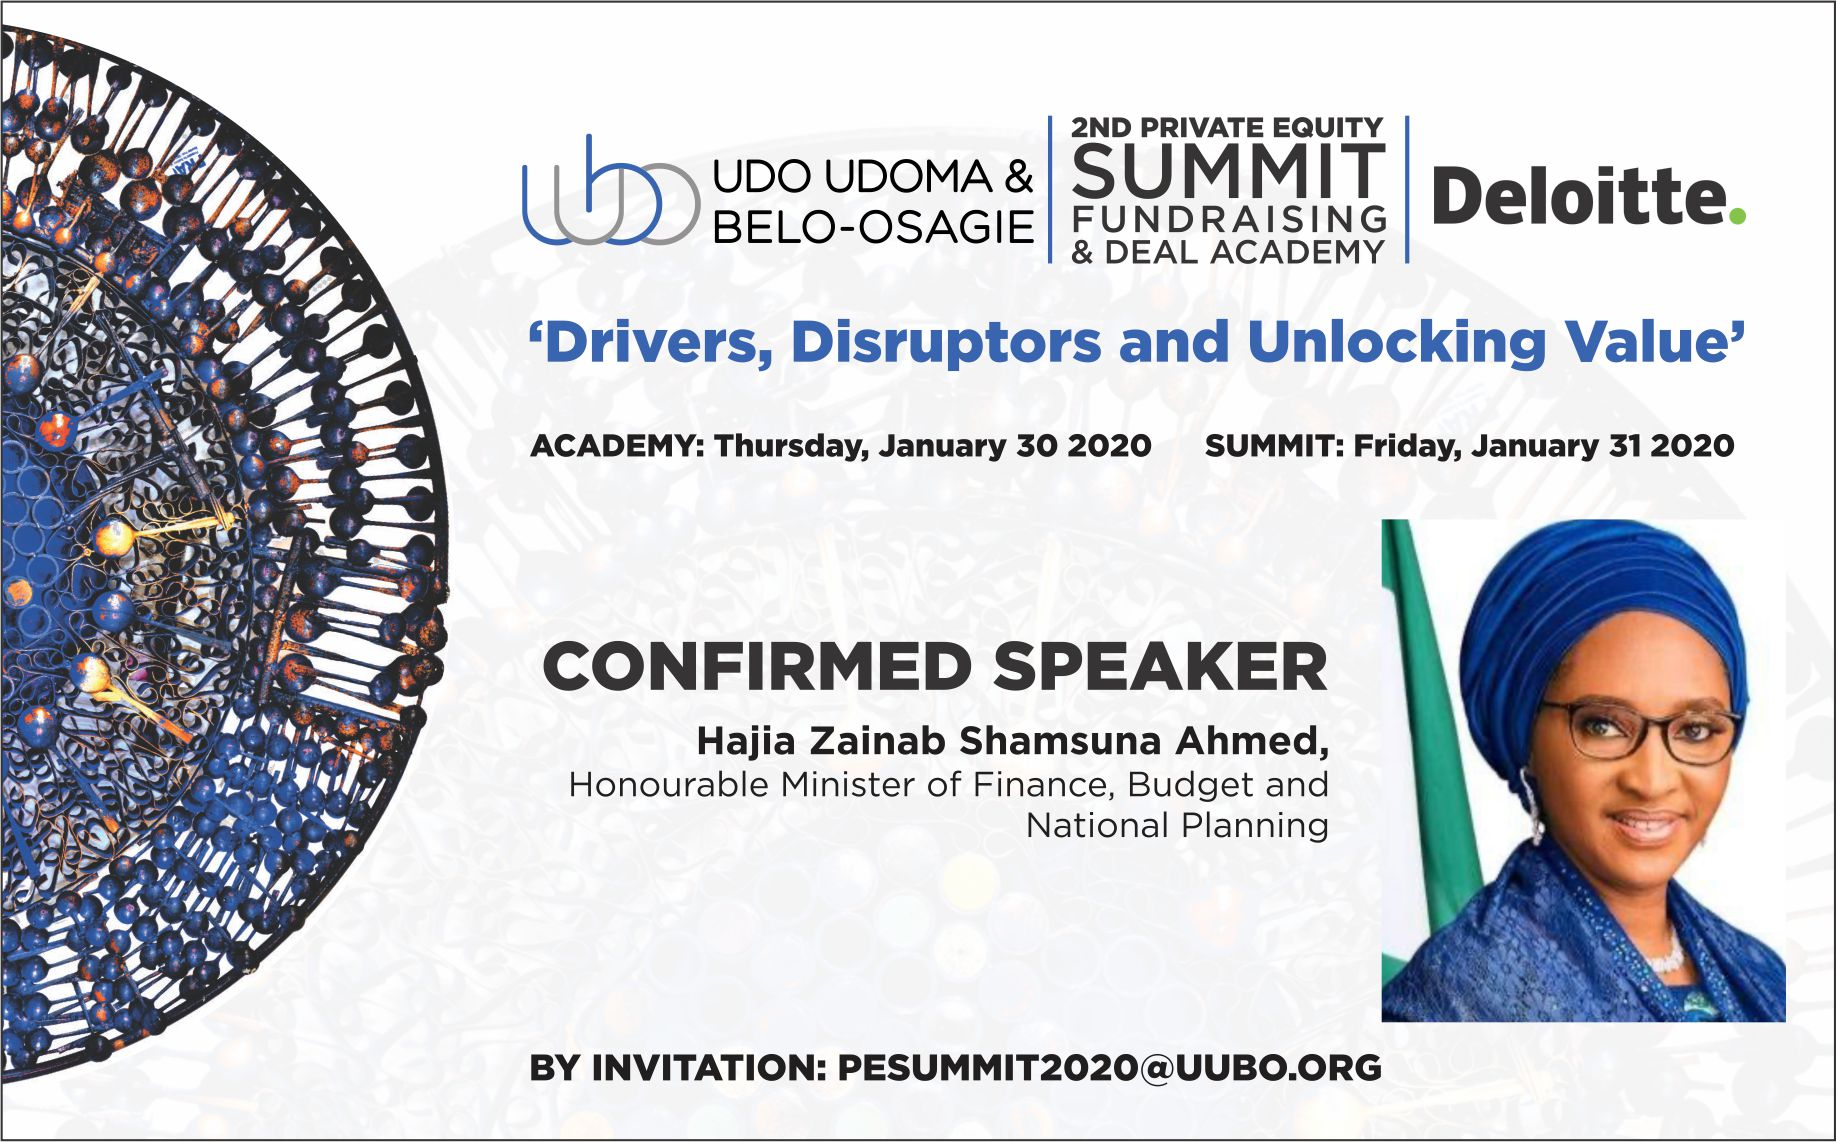 PE Summit Confirmed Speaker Hajia Zainab Shamsuna Ahmed 02